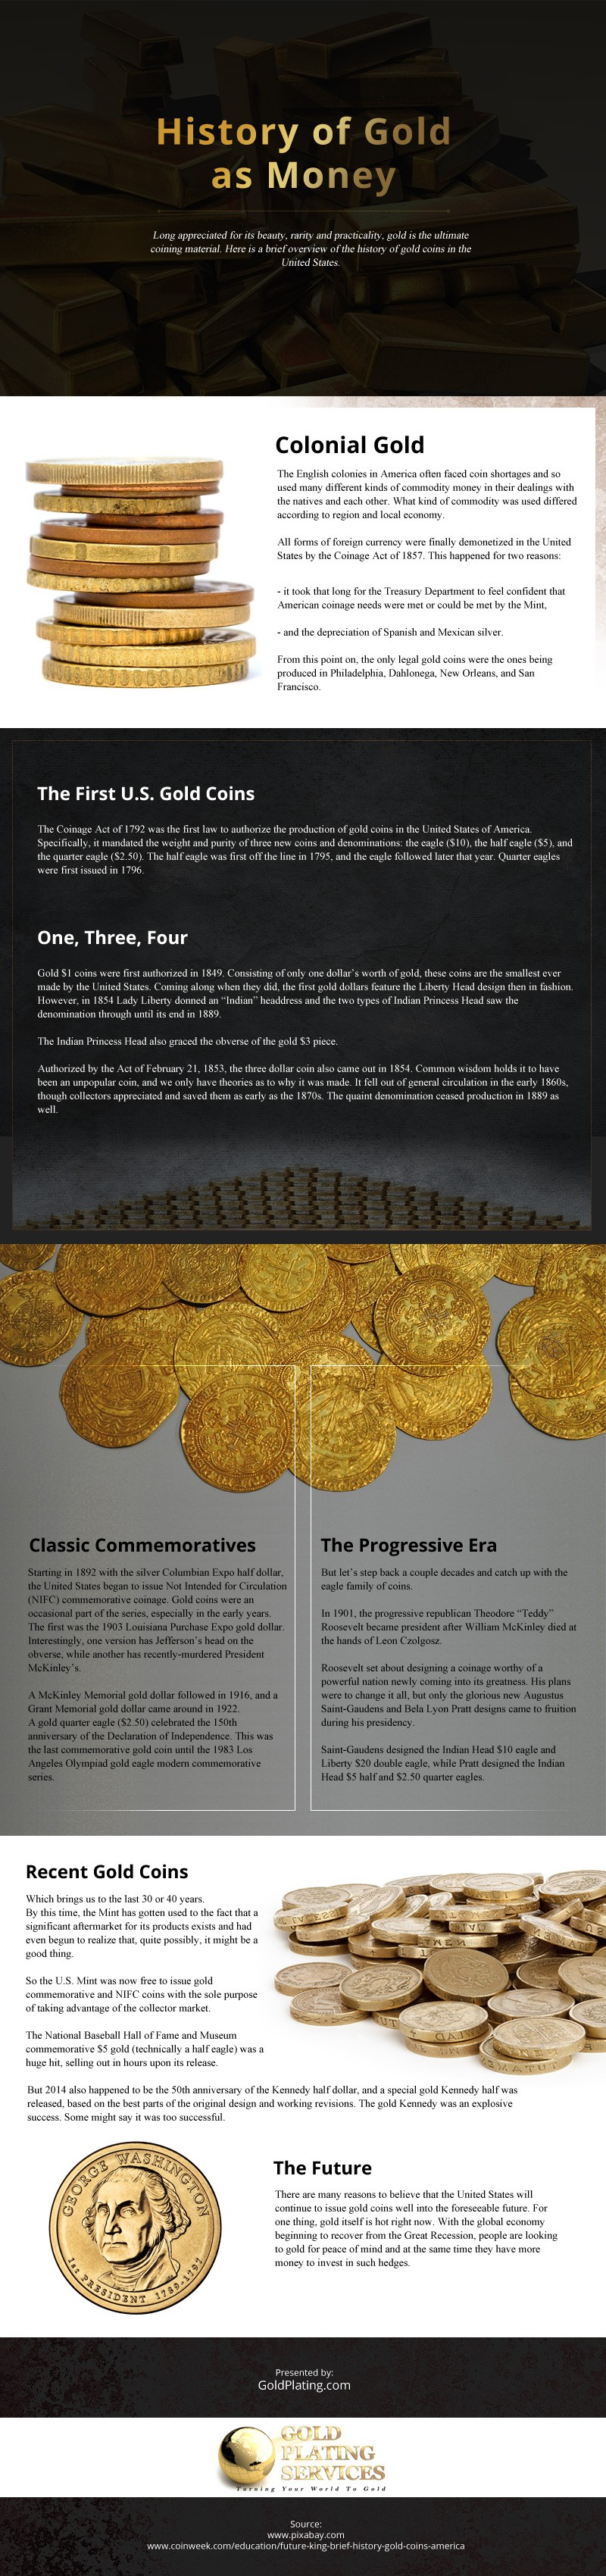 History of Gold as Money Infographic